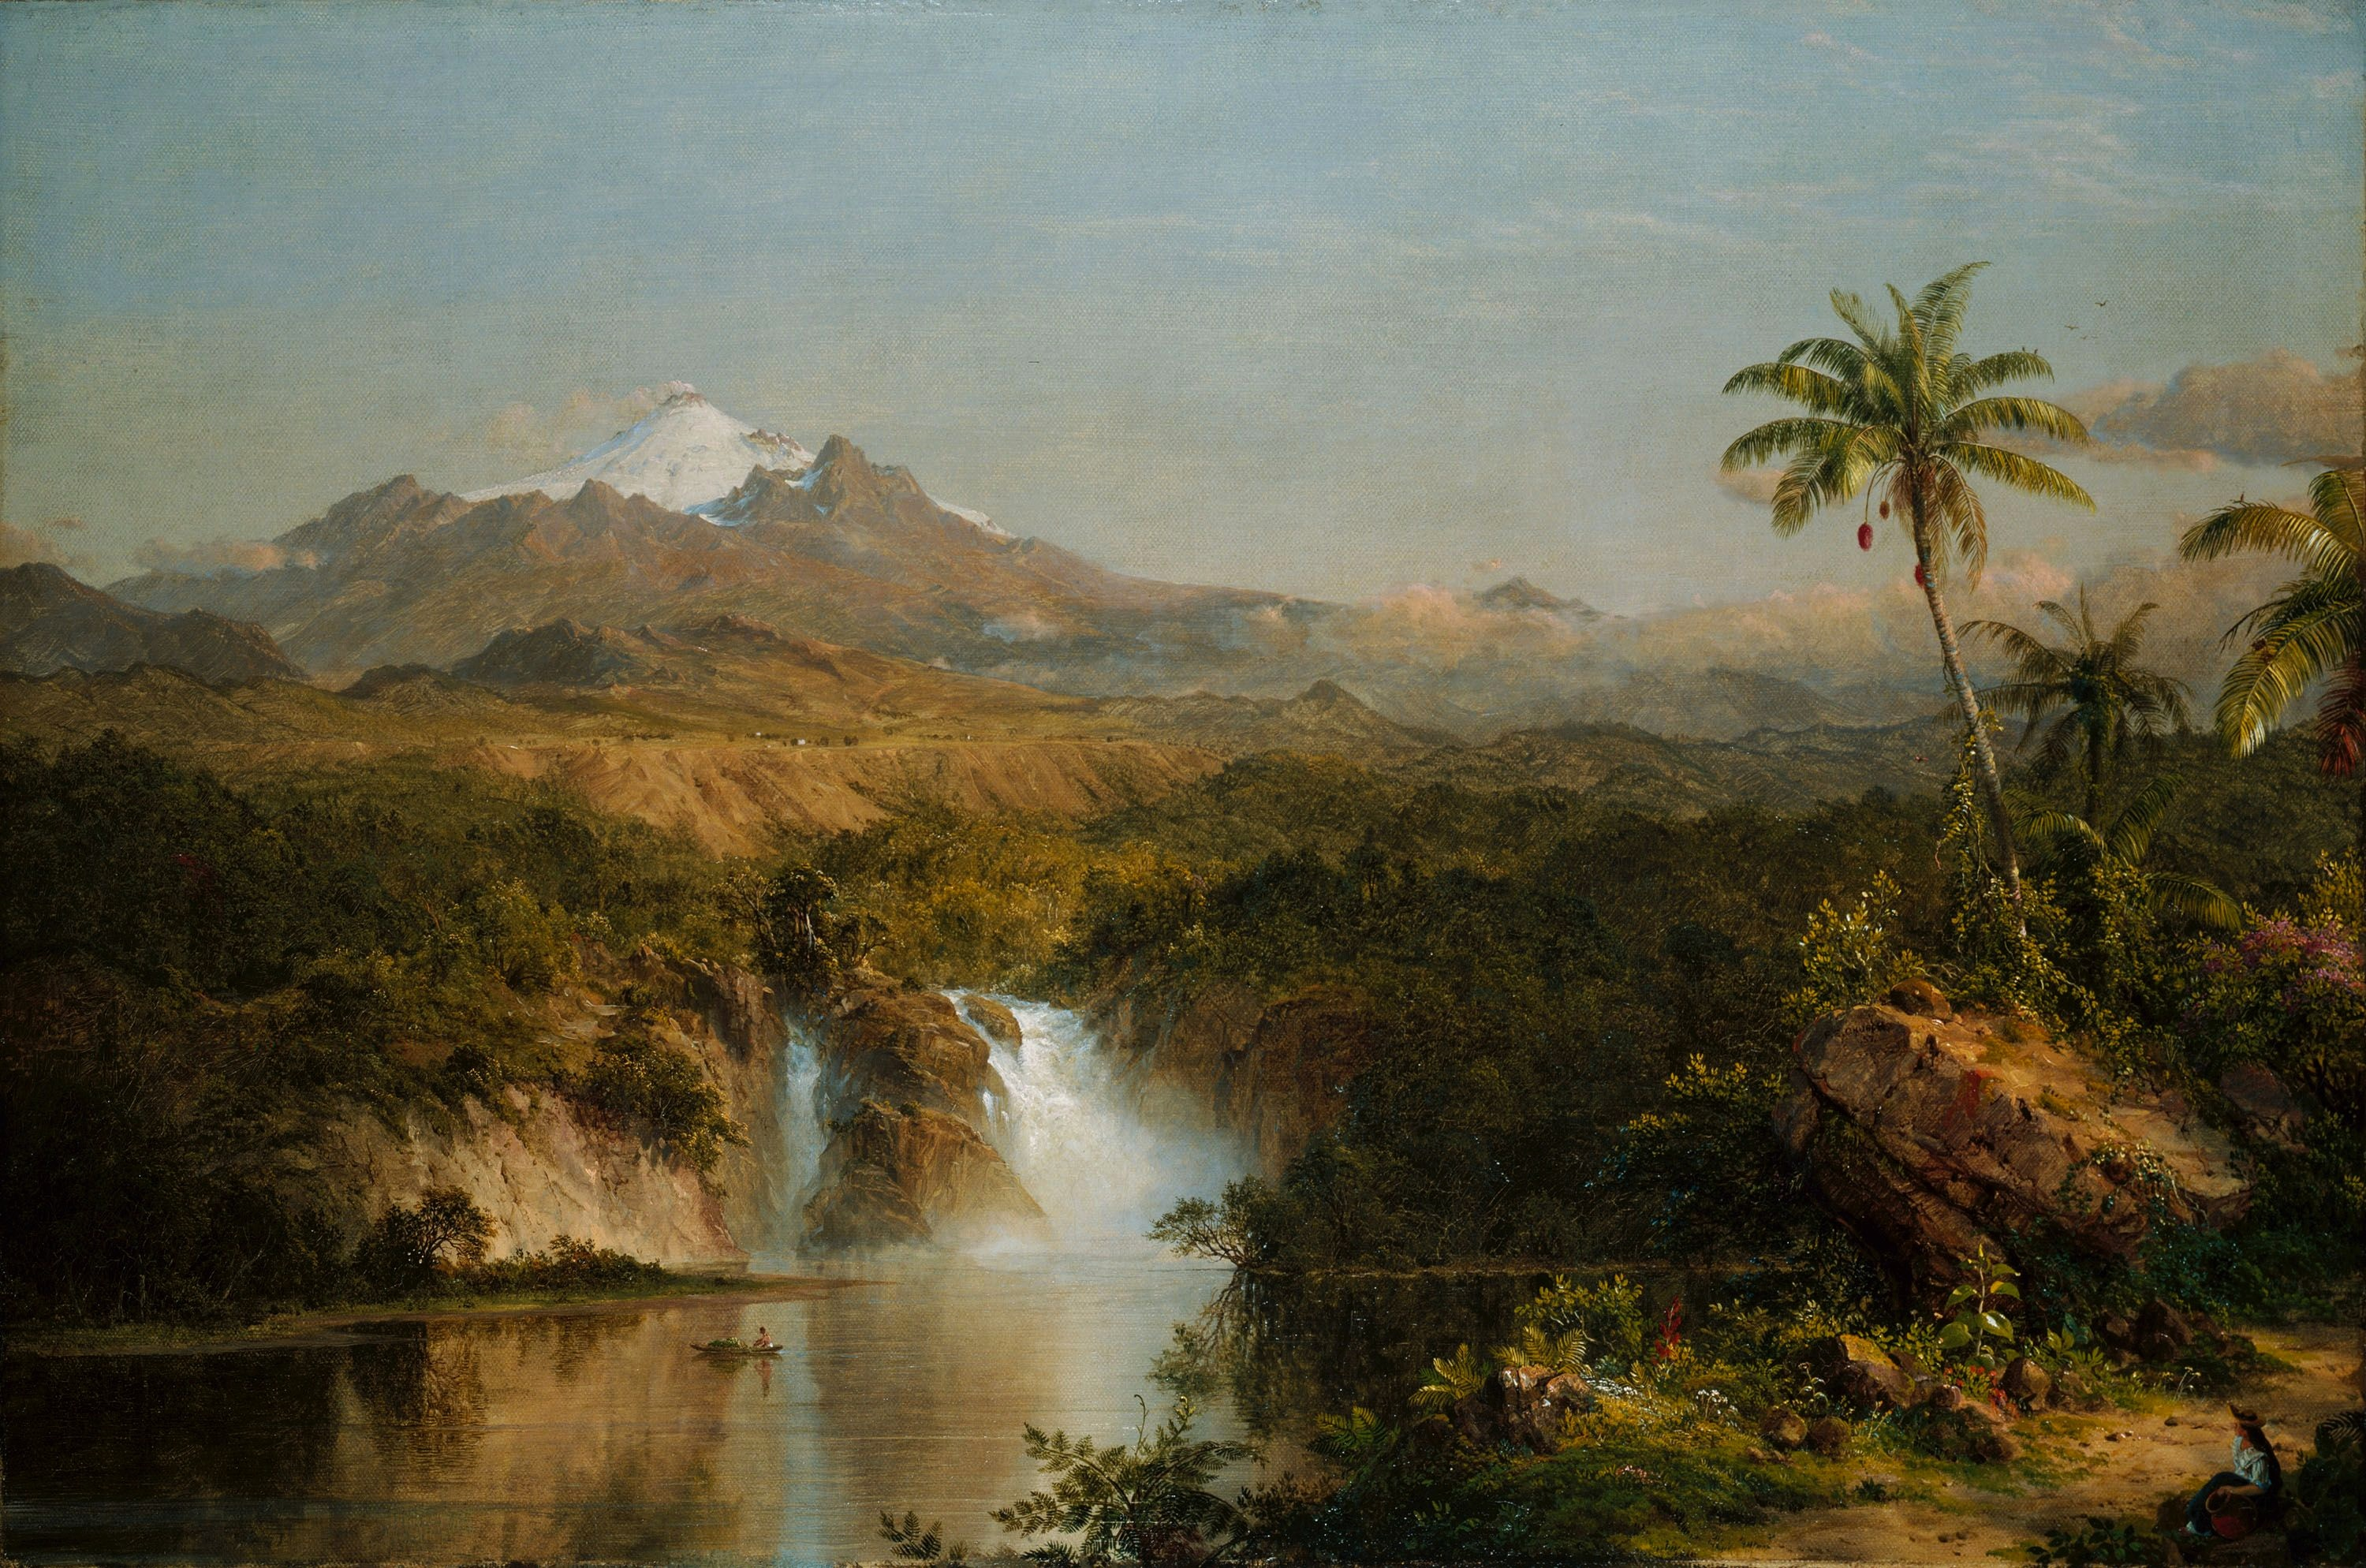 File:View of Cotopaxi by Frederic Edwin Church 1857.jpg